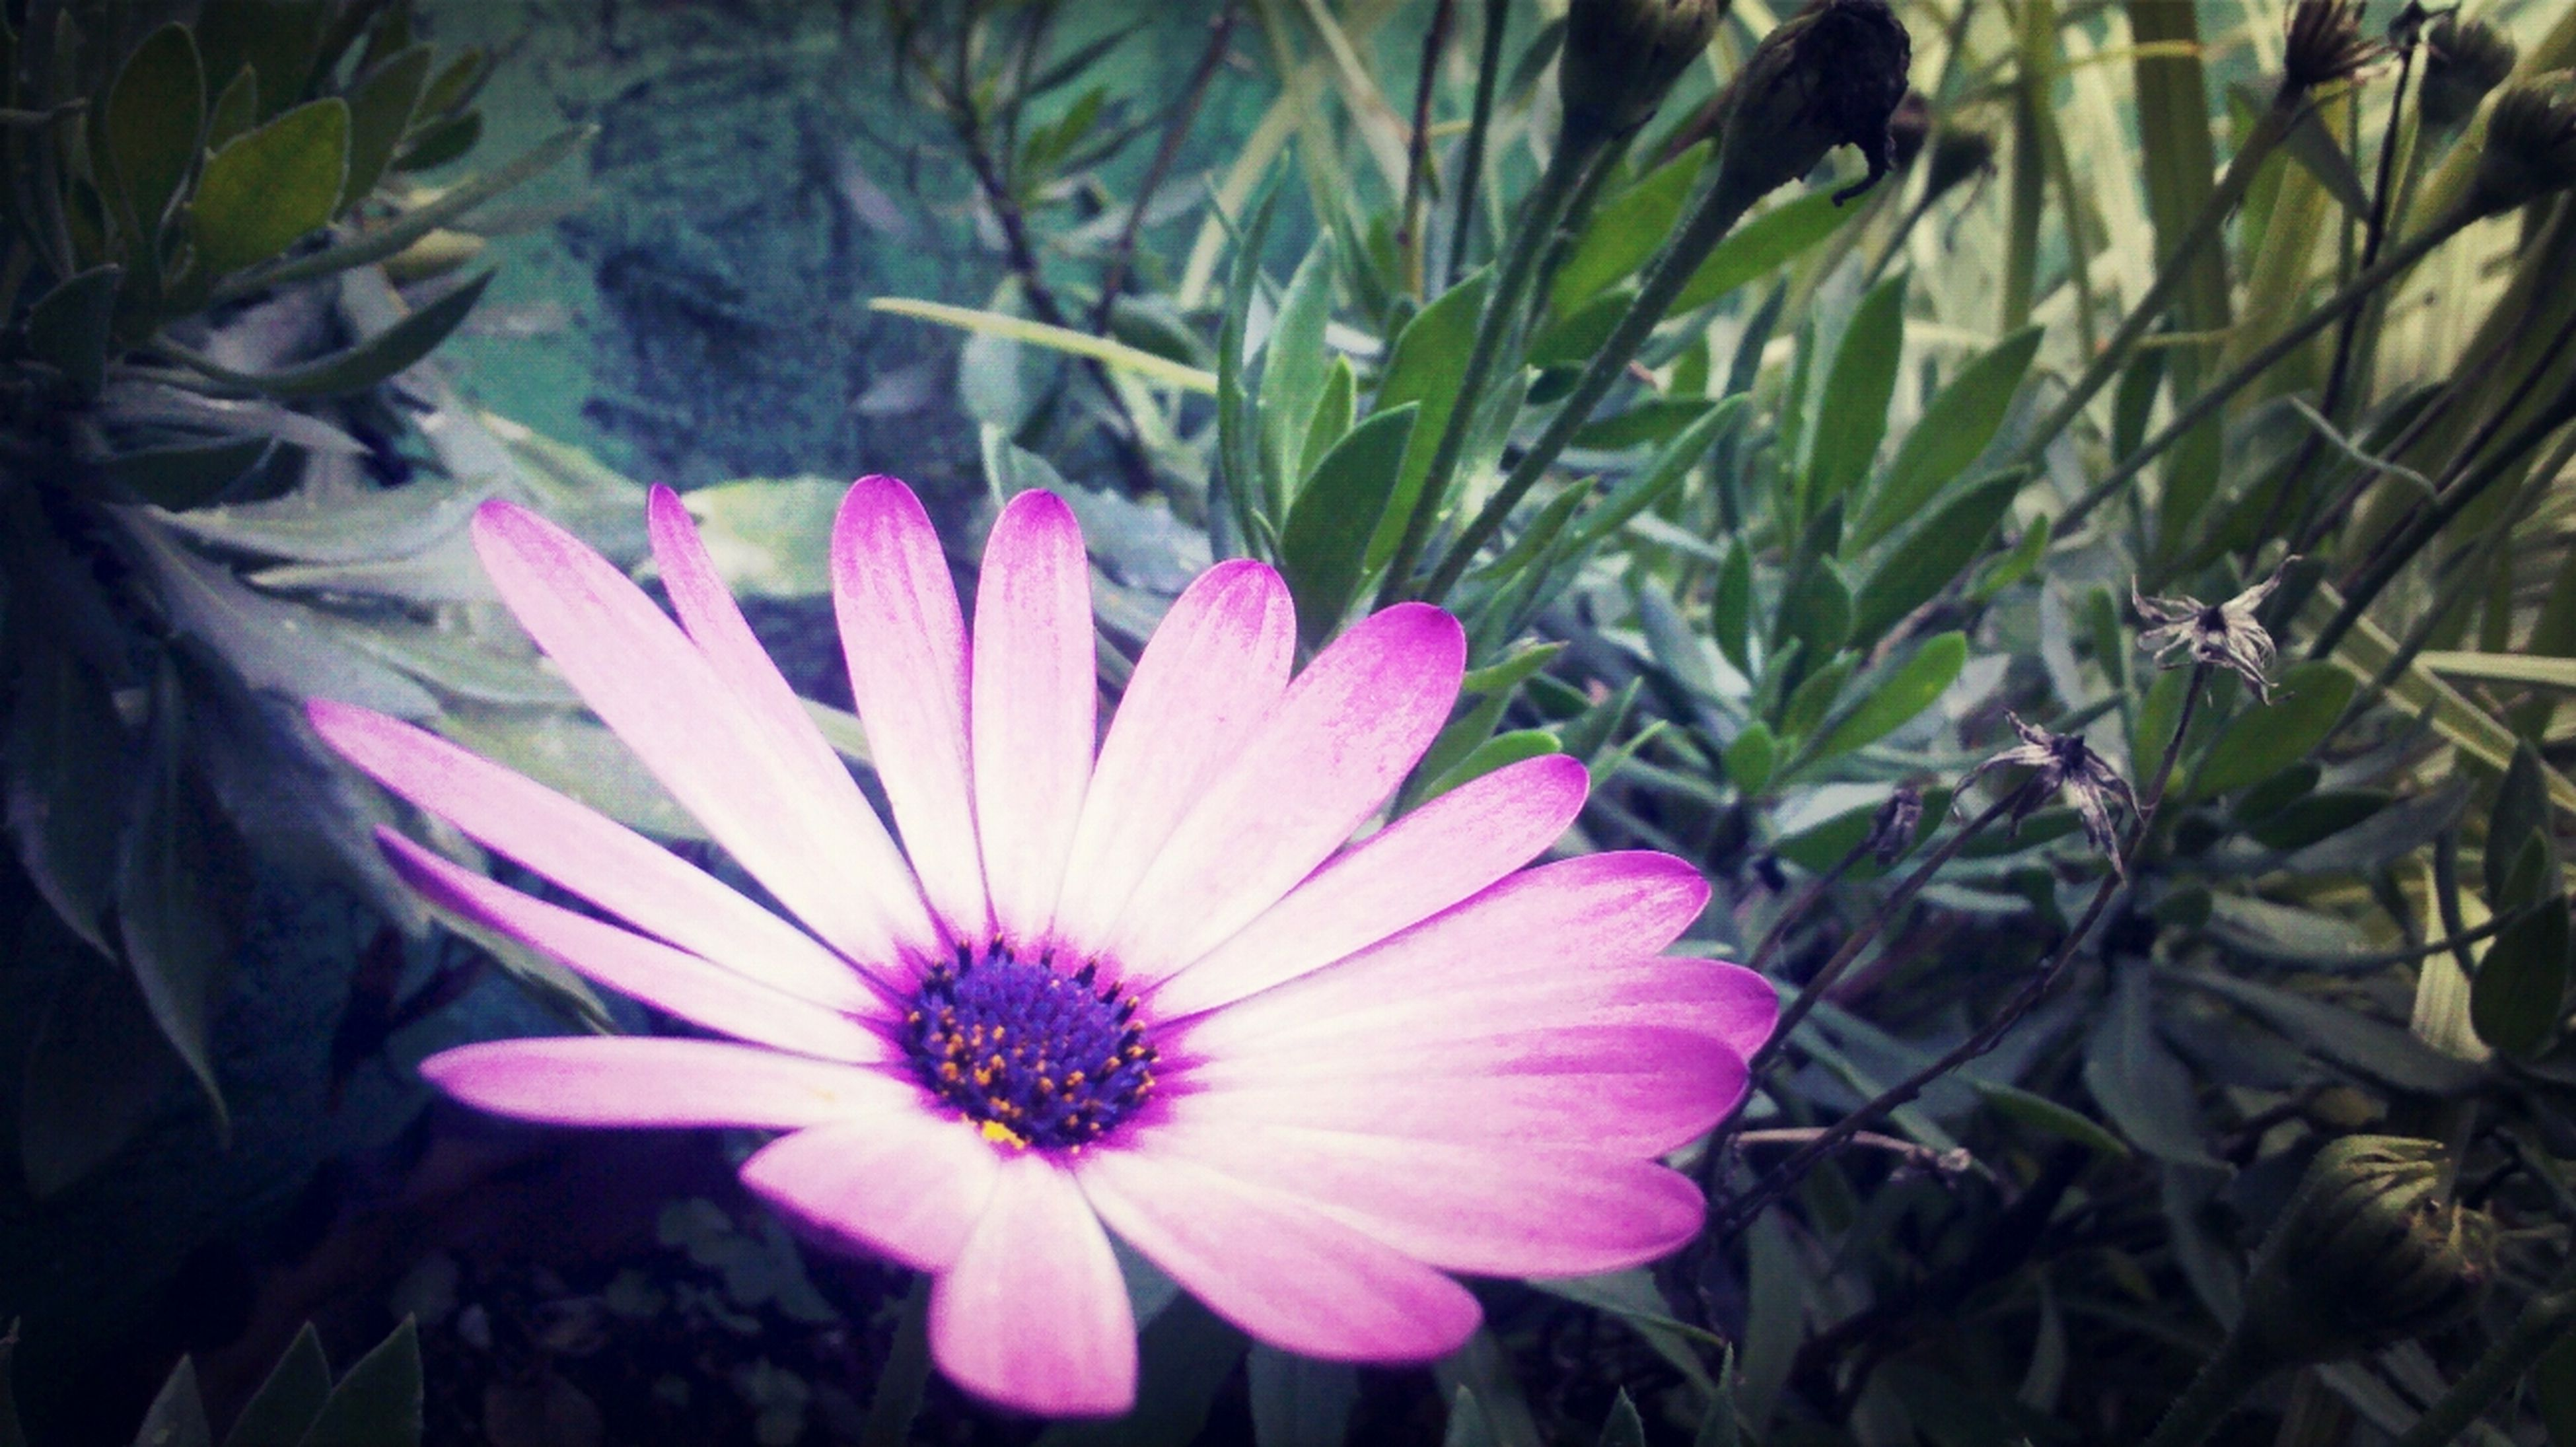 flower, petal, freshness, fragility, flower head, growth, beauty in nature, blooming, plant, nature, close-up, leaf, pink color, pollen, in bloom, focus on foreground, high angle view, day, outdoors, single flower